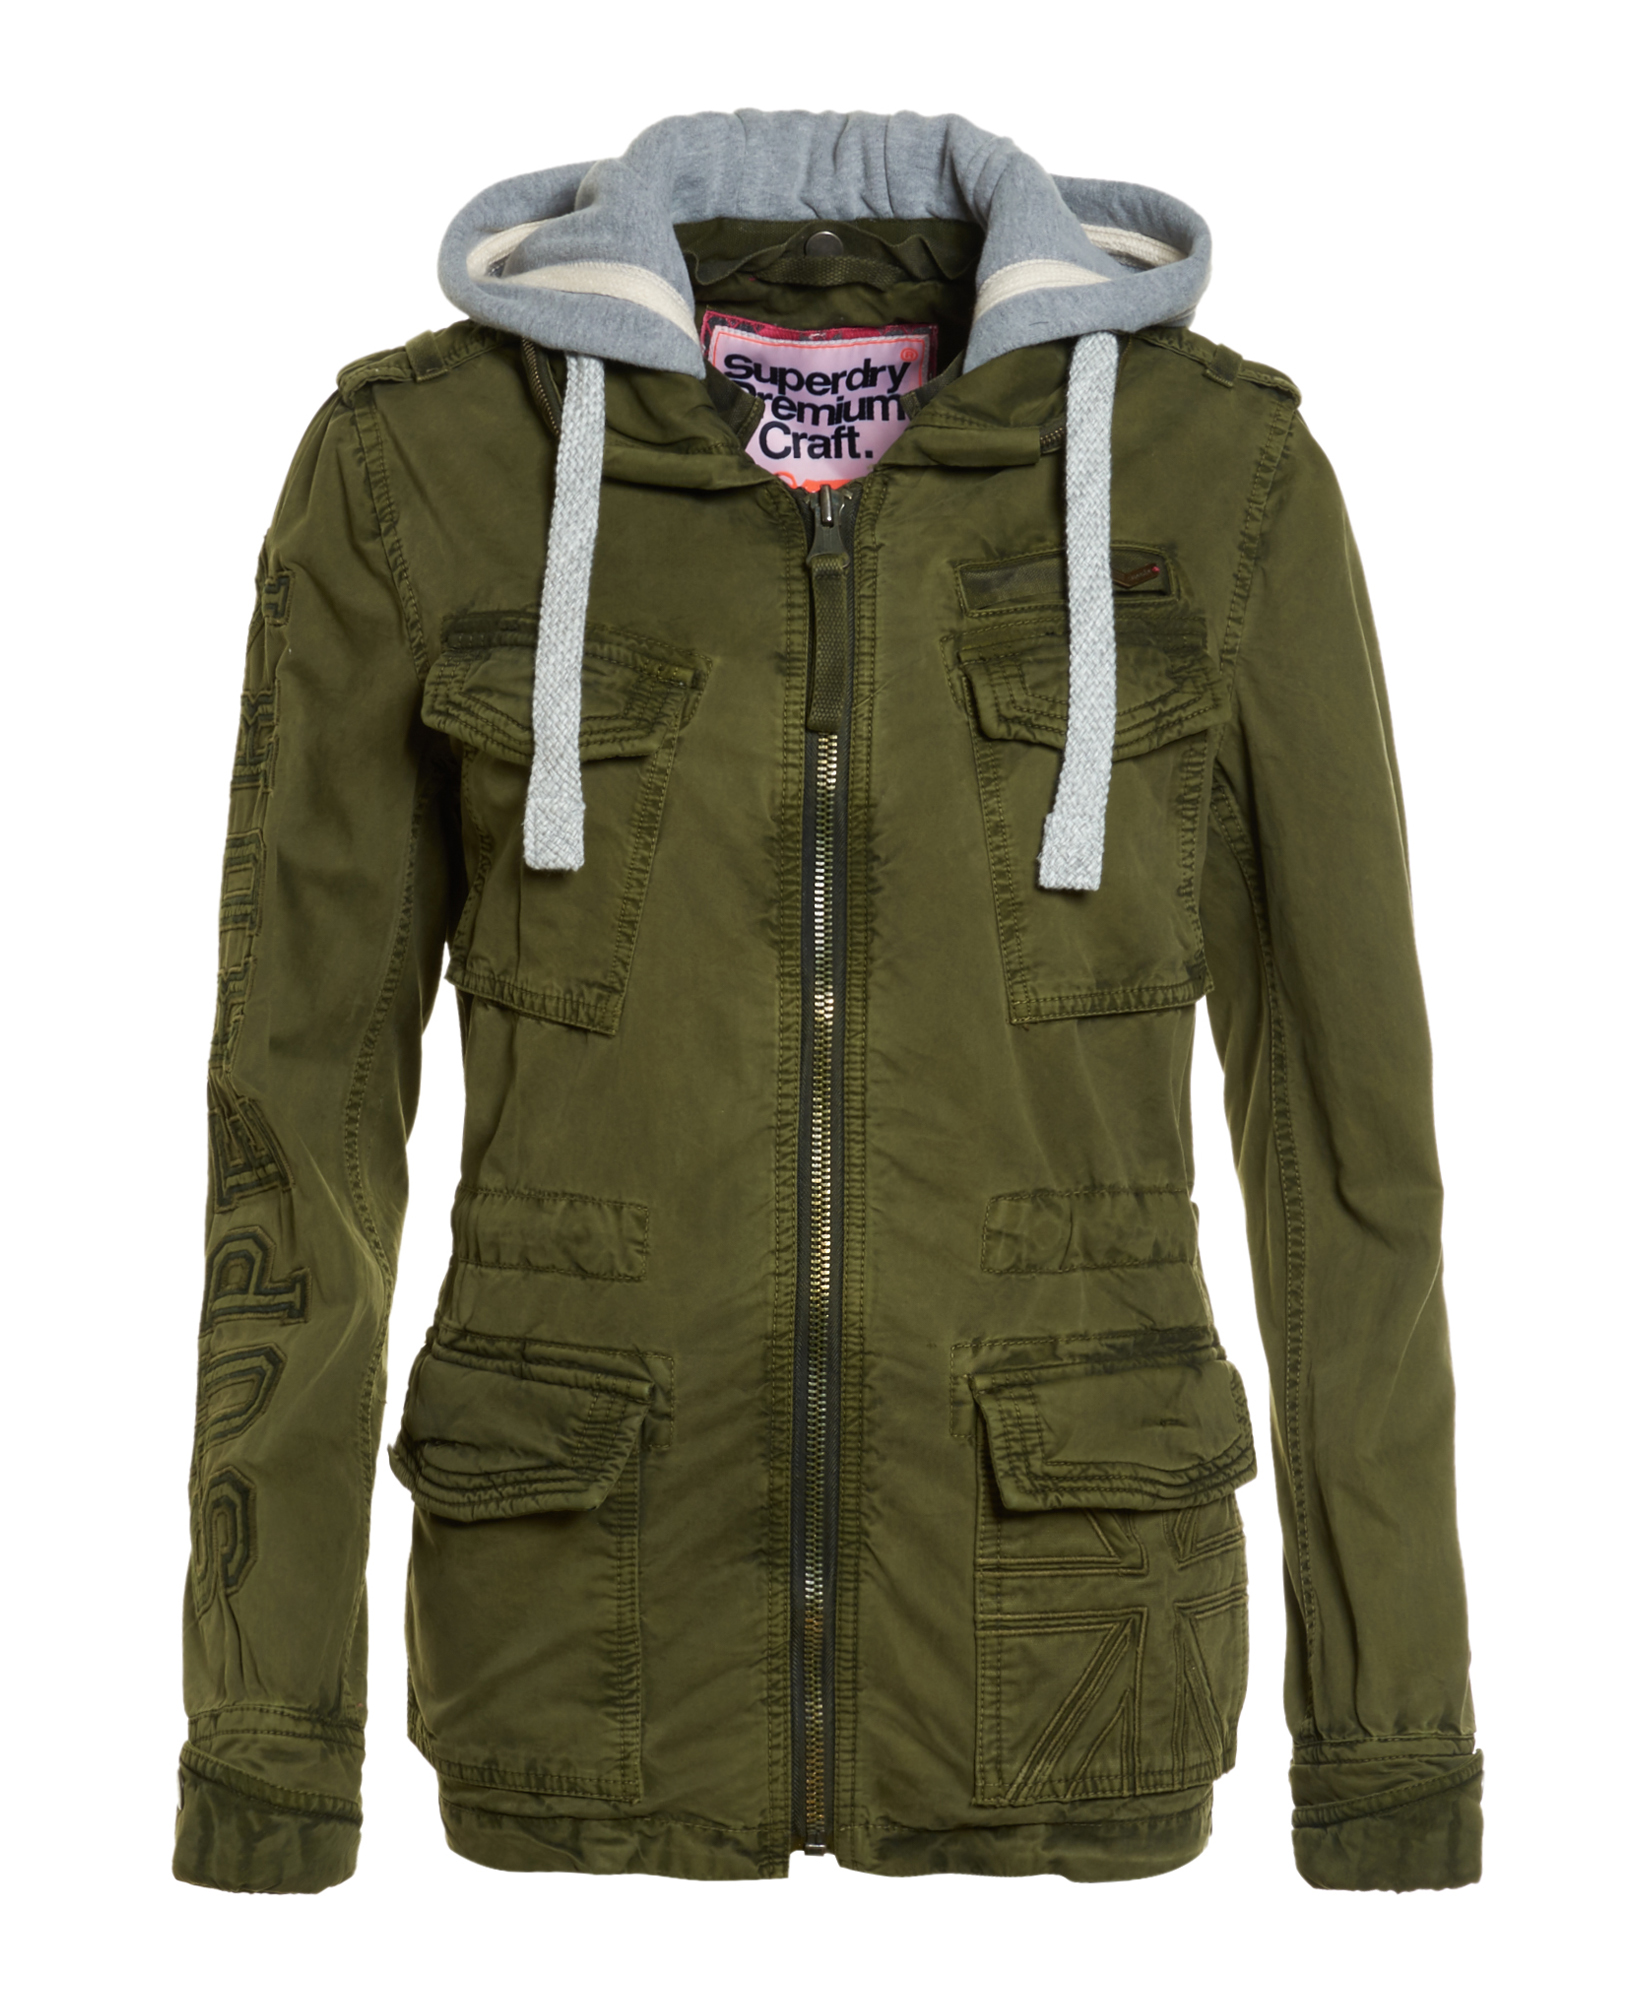 neue damen superdry craft army jacket army ebay. Black Bedroom Furniture Sets. Home Design Ideas